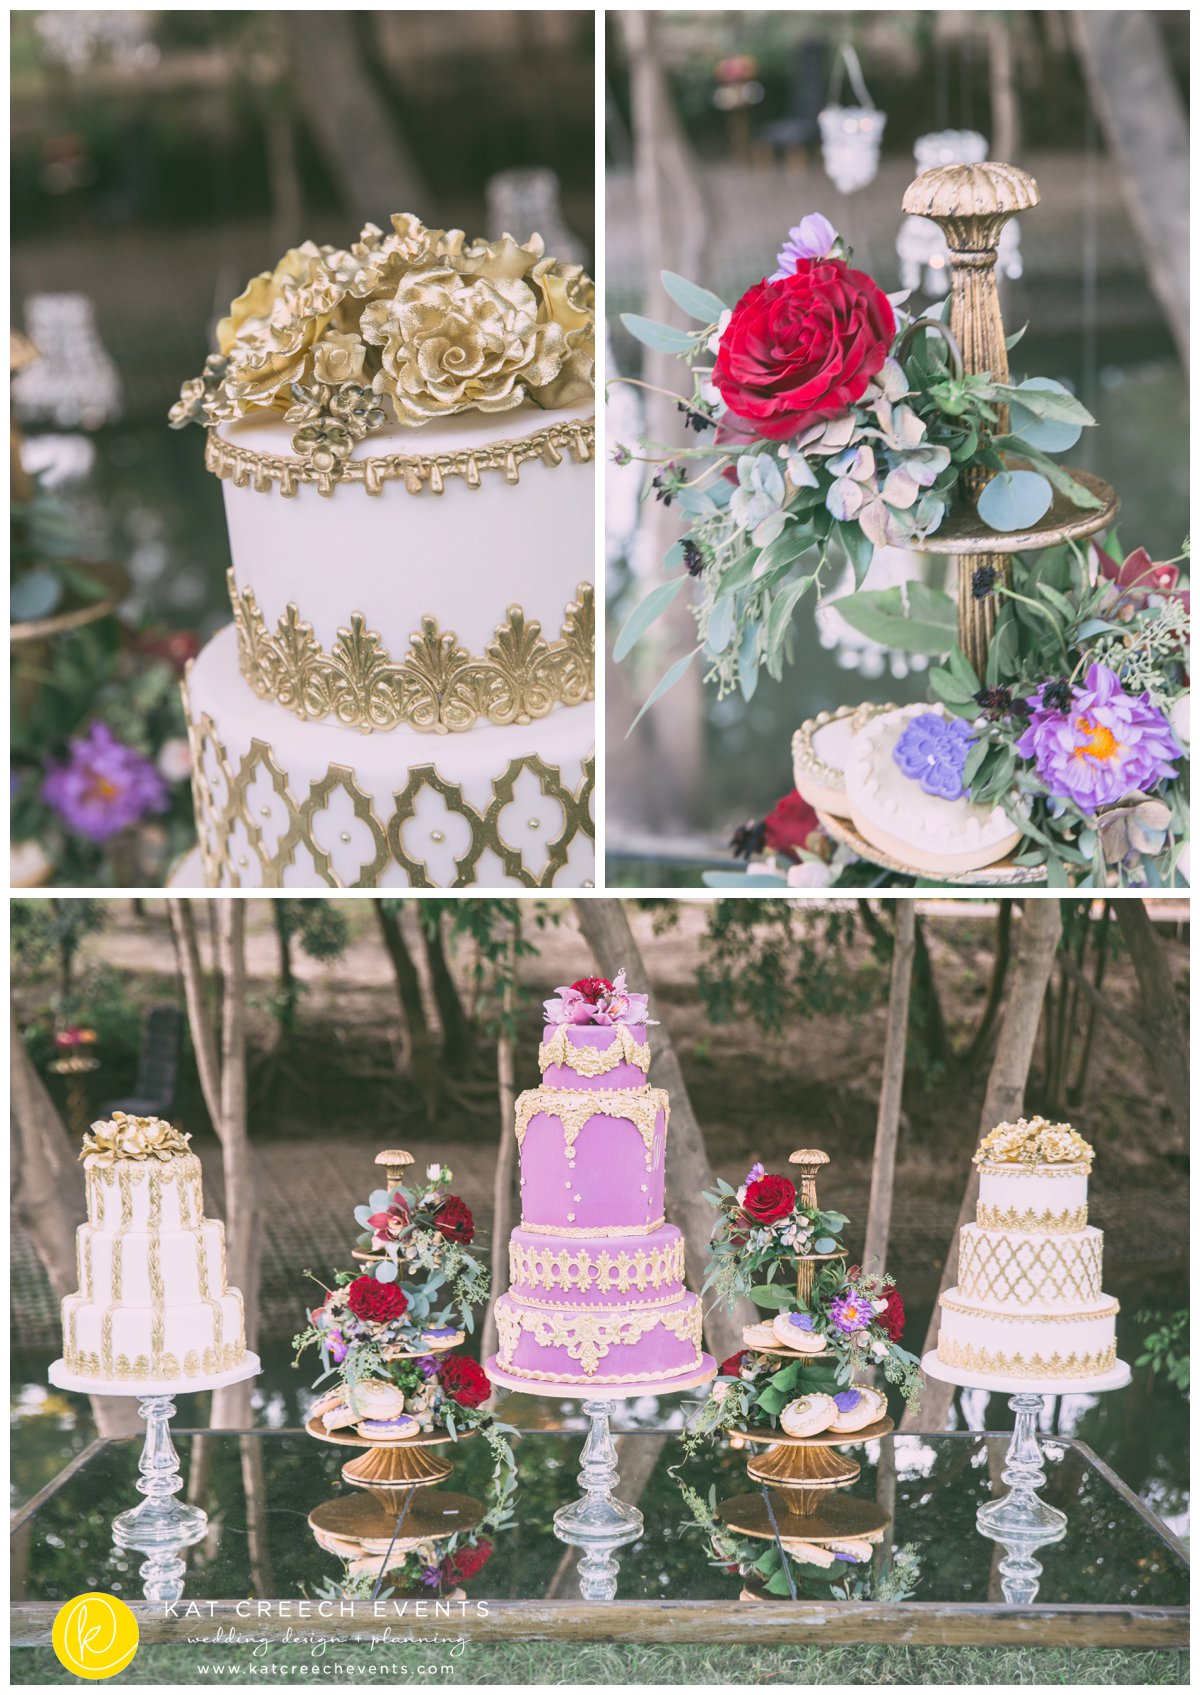 wedding cake | wedding cookies | romance on the bayou | kat creech events | wedding stylist